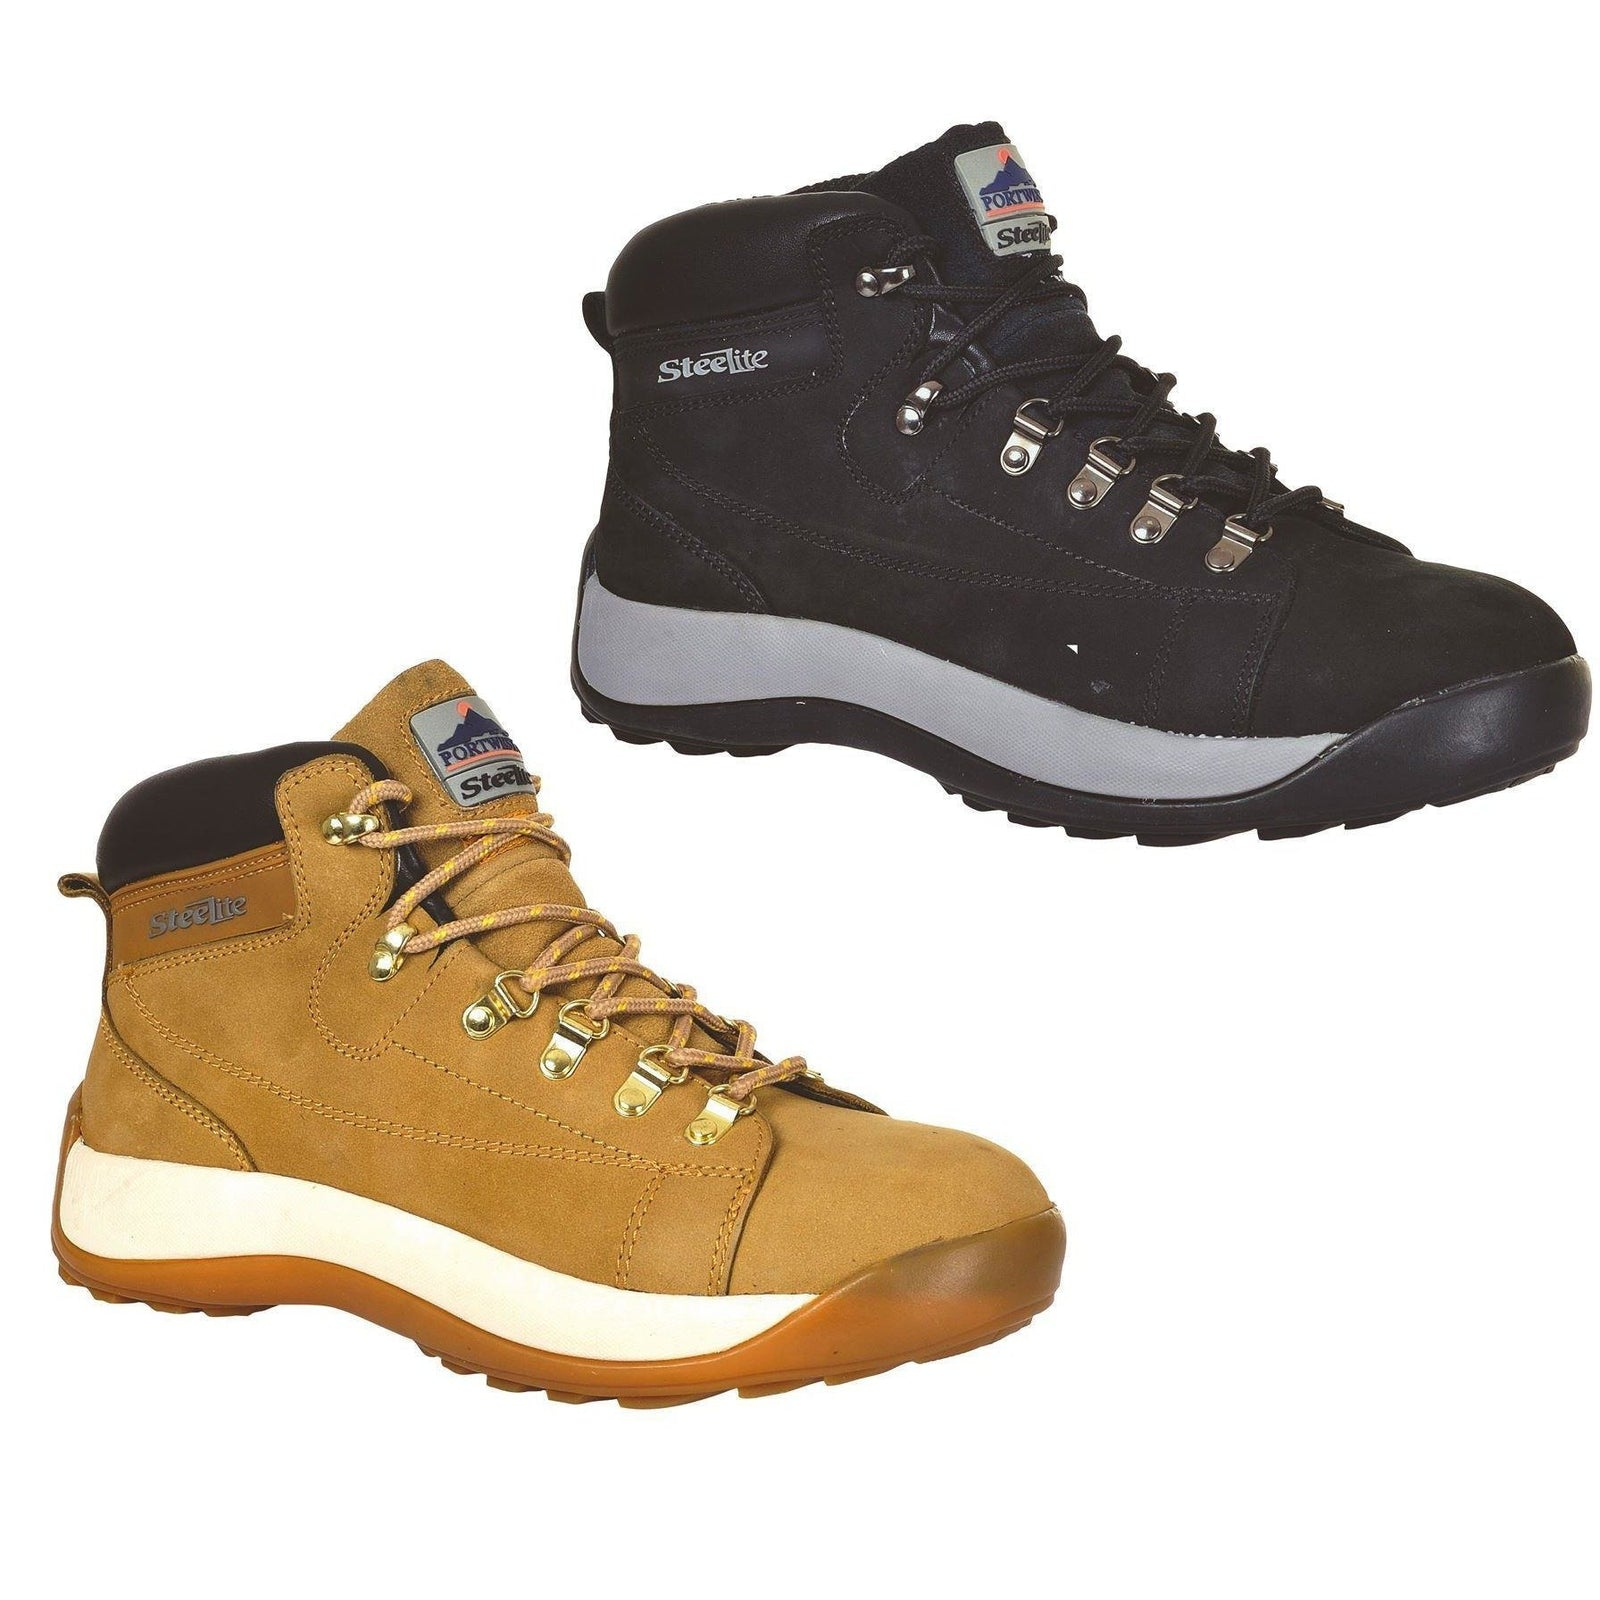 Portwest Steelite Mid Cut Nubuck Boot SB HRO FW31 - reid outdoors